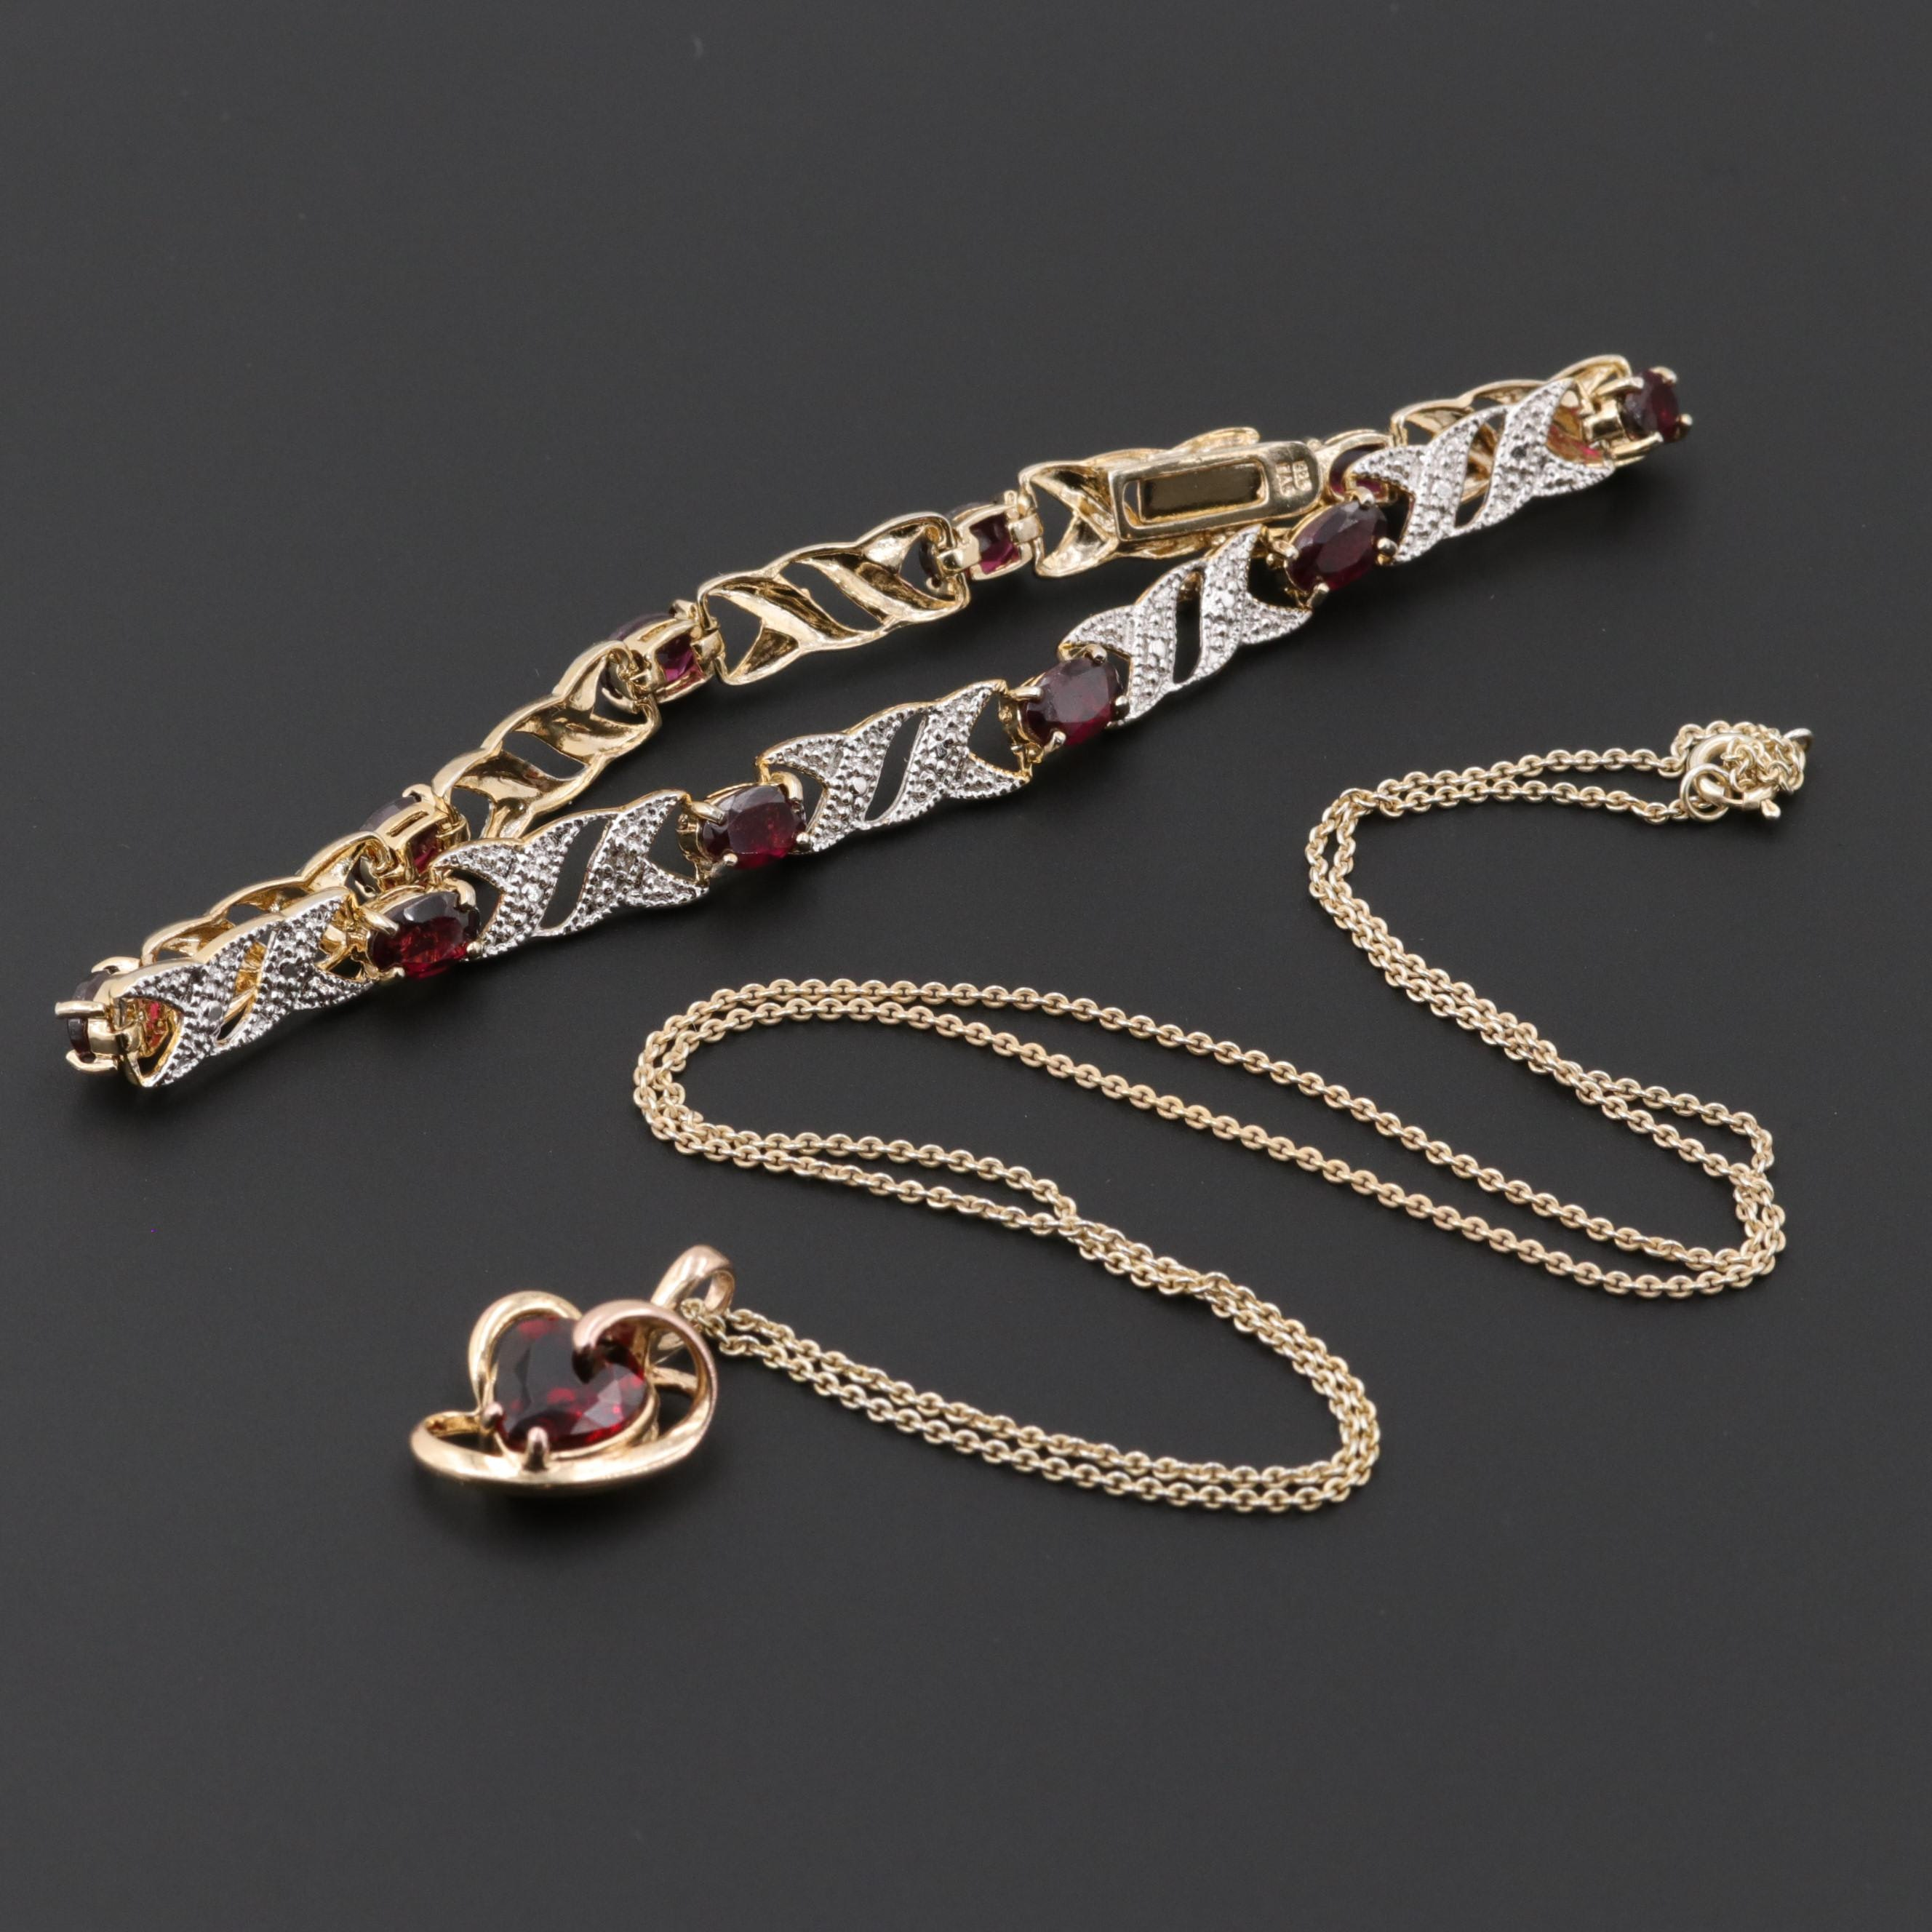 Sterling Silver Two Tone Garnet and Diamond Bracelet and Necklace Set